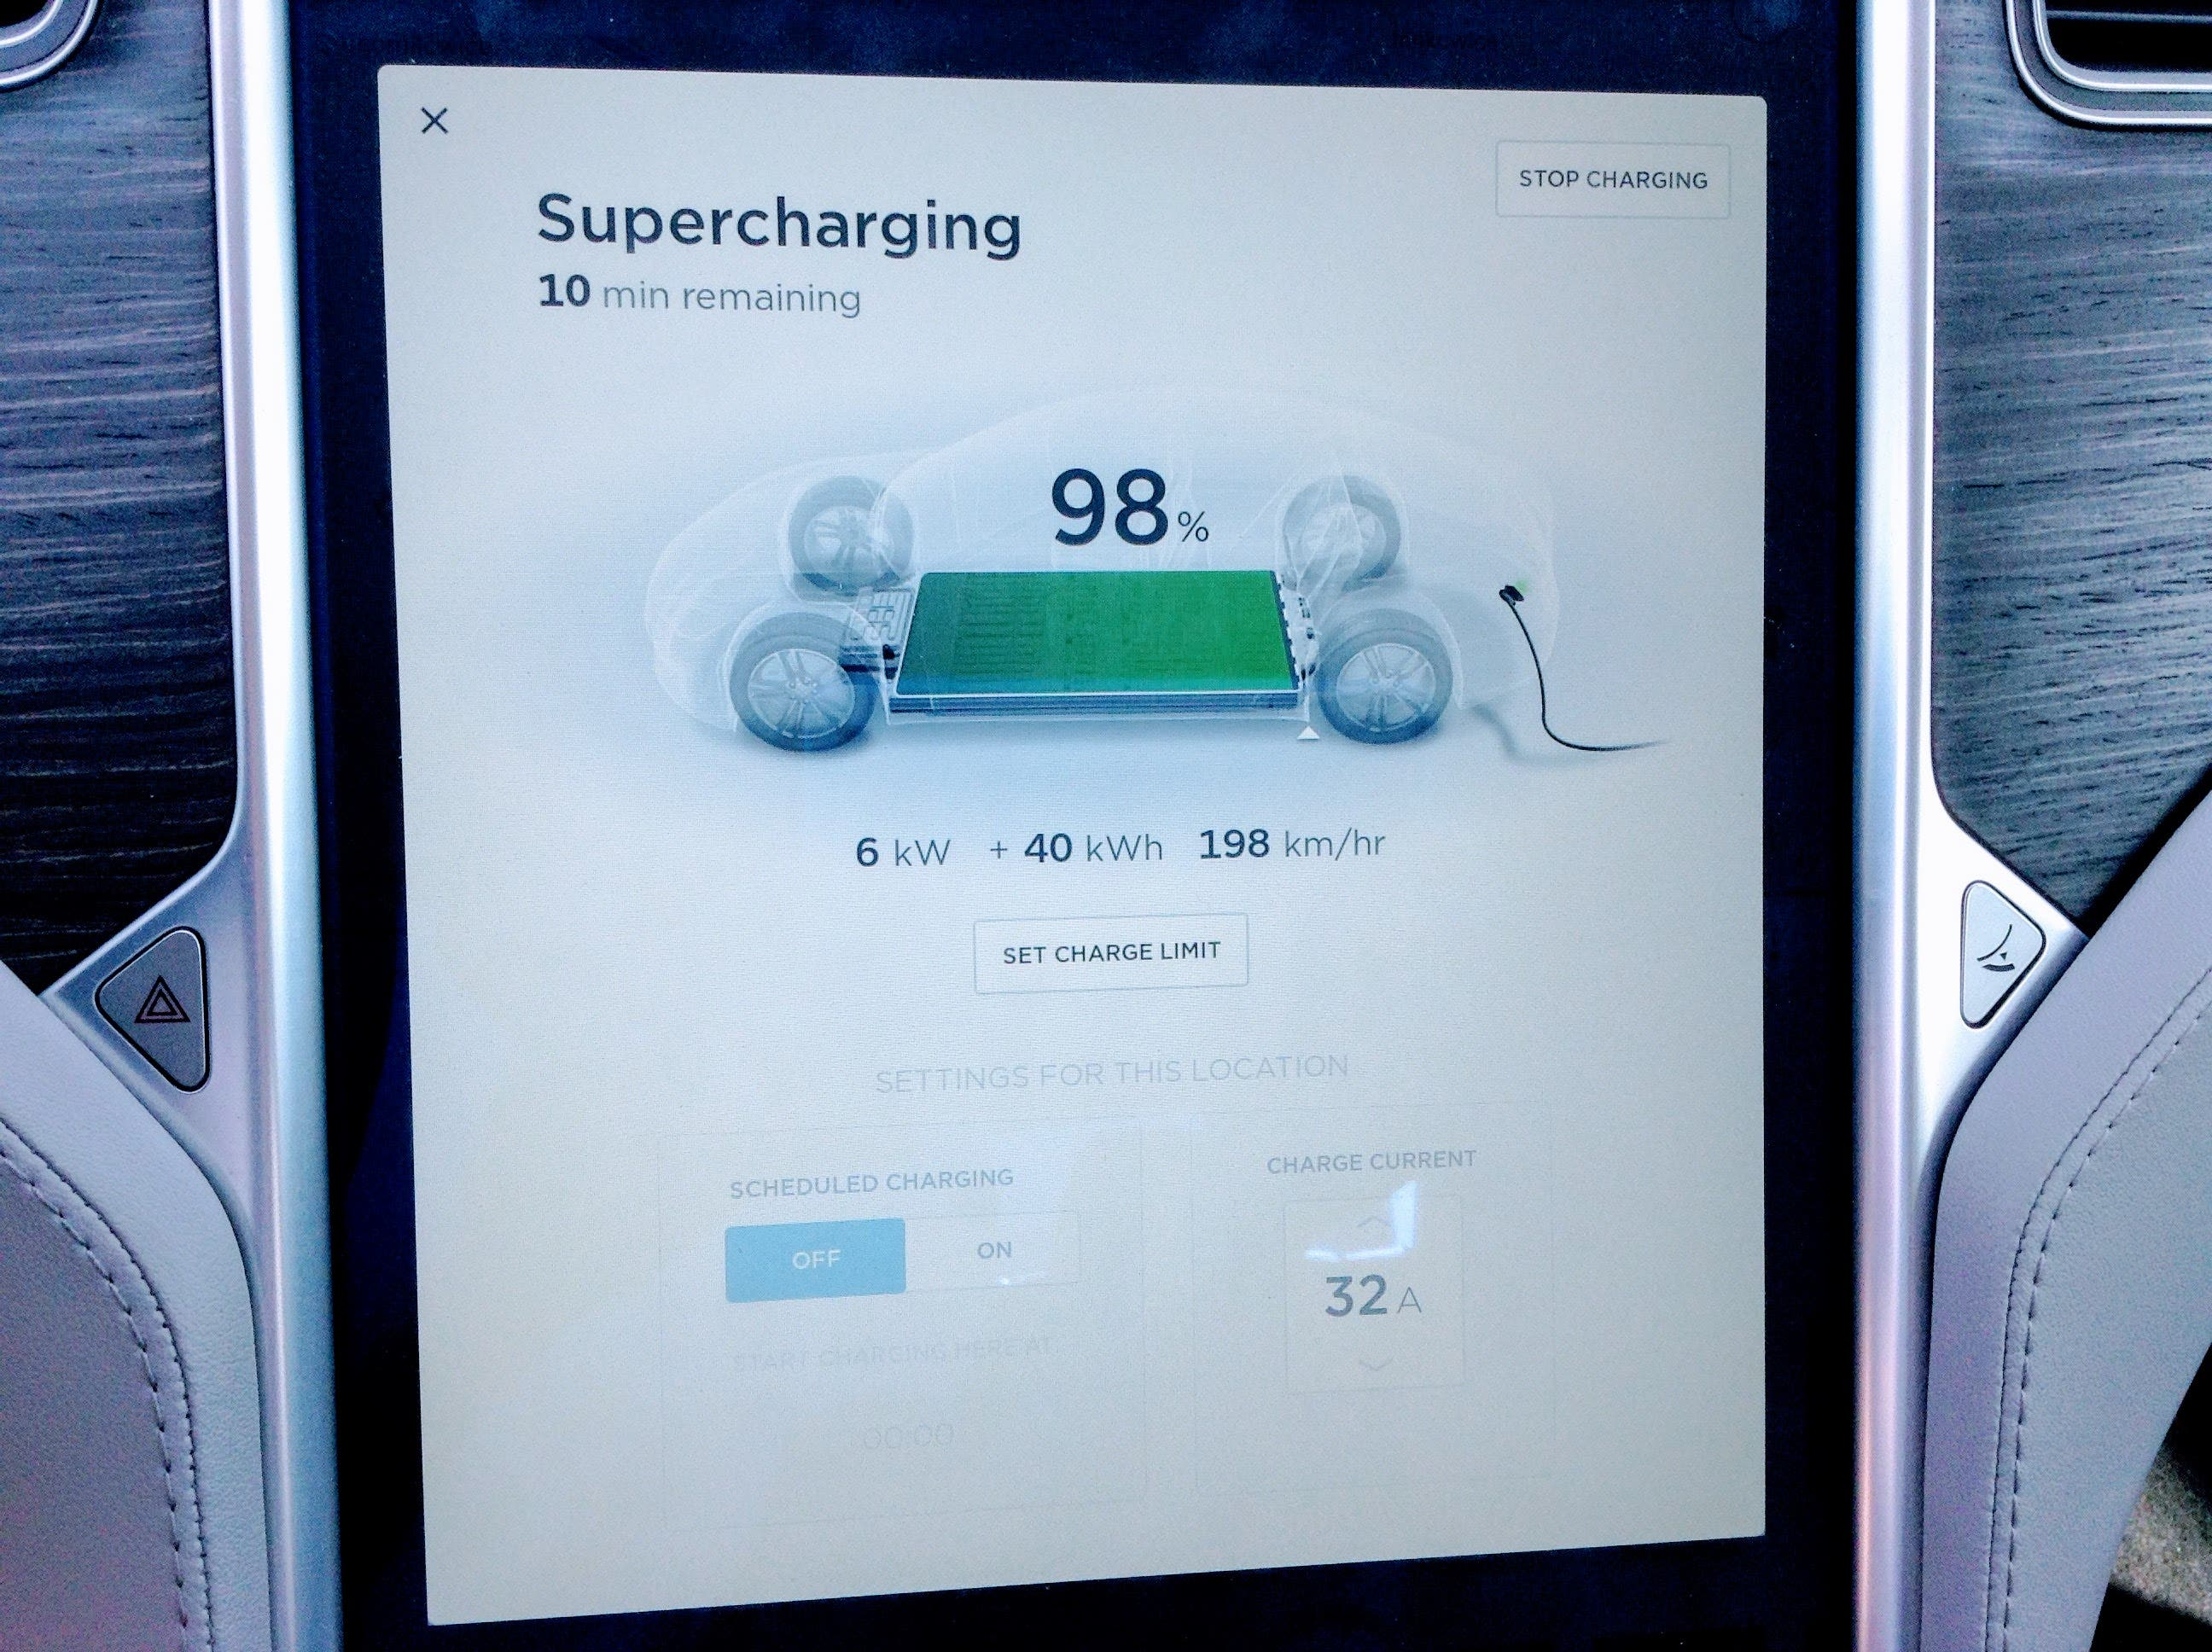 Trip Charge Calculator Tesla Smart Navigation Is Brilliant 3 Tips Cleantechnica